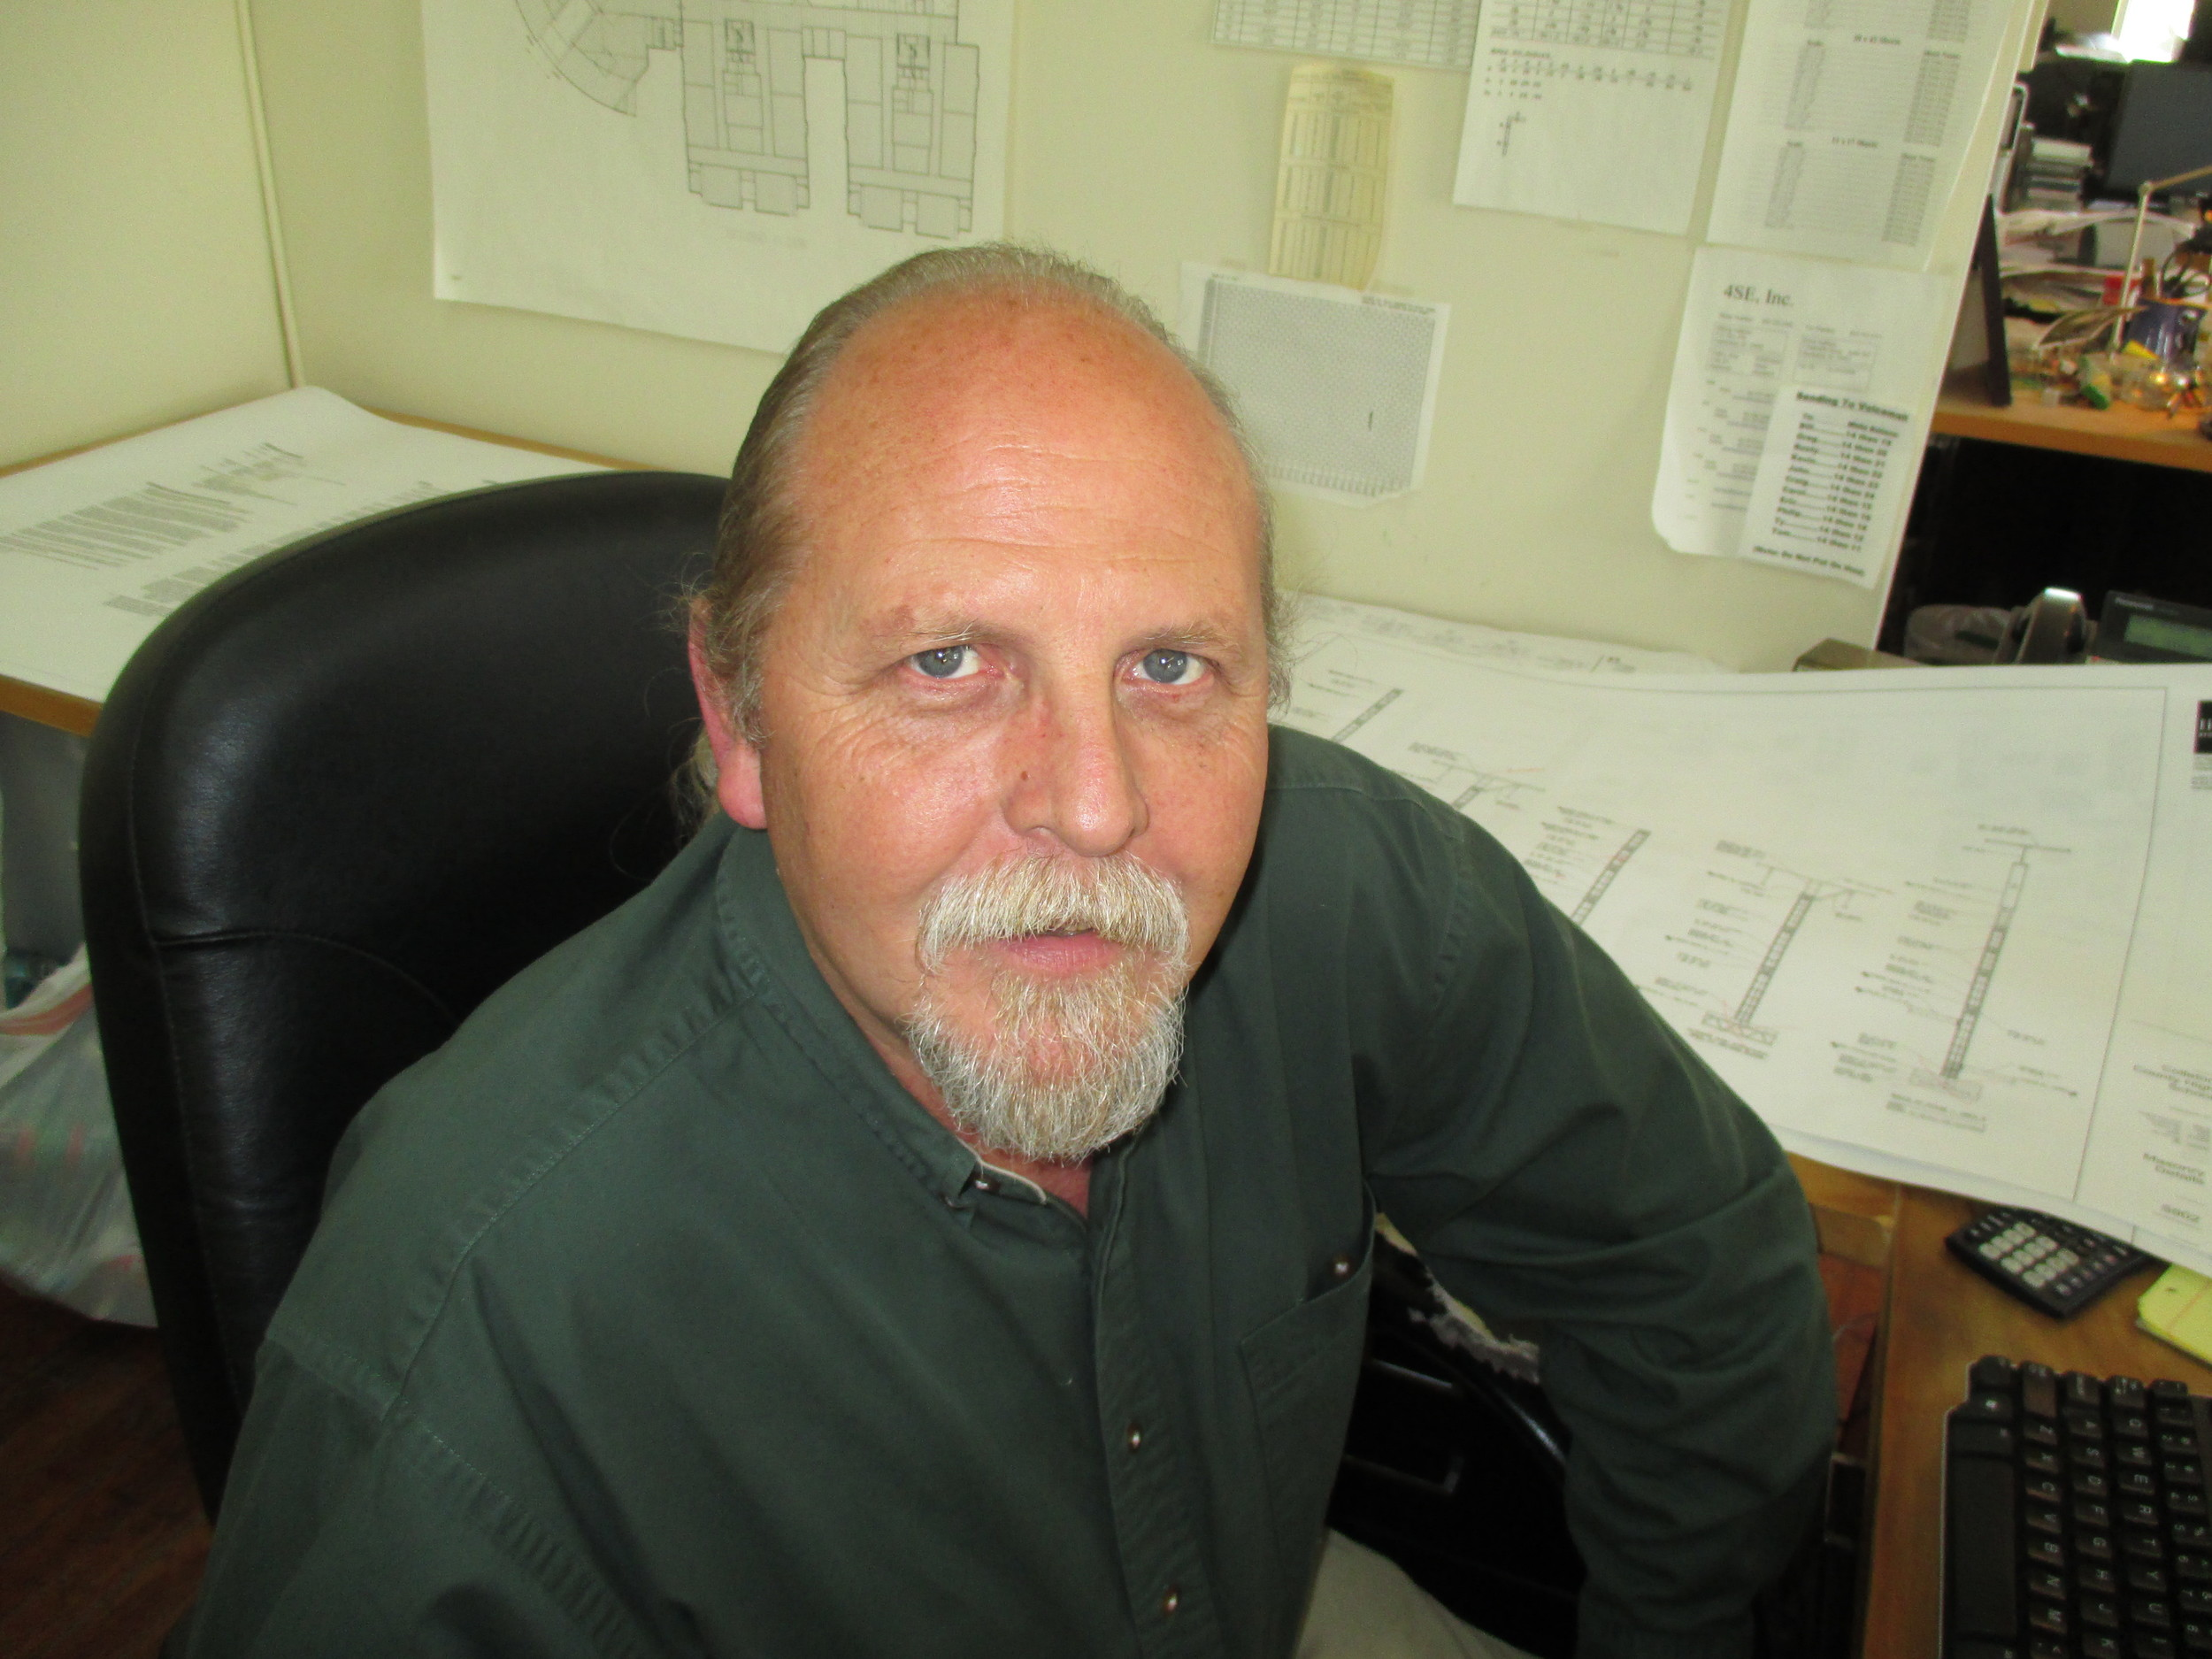 Kevin Googe, CAD Technician, Head of Production